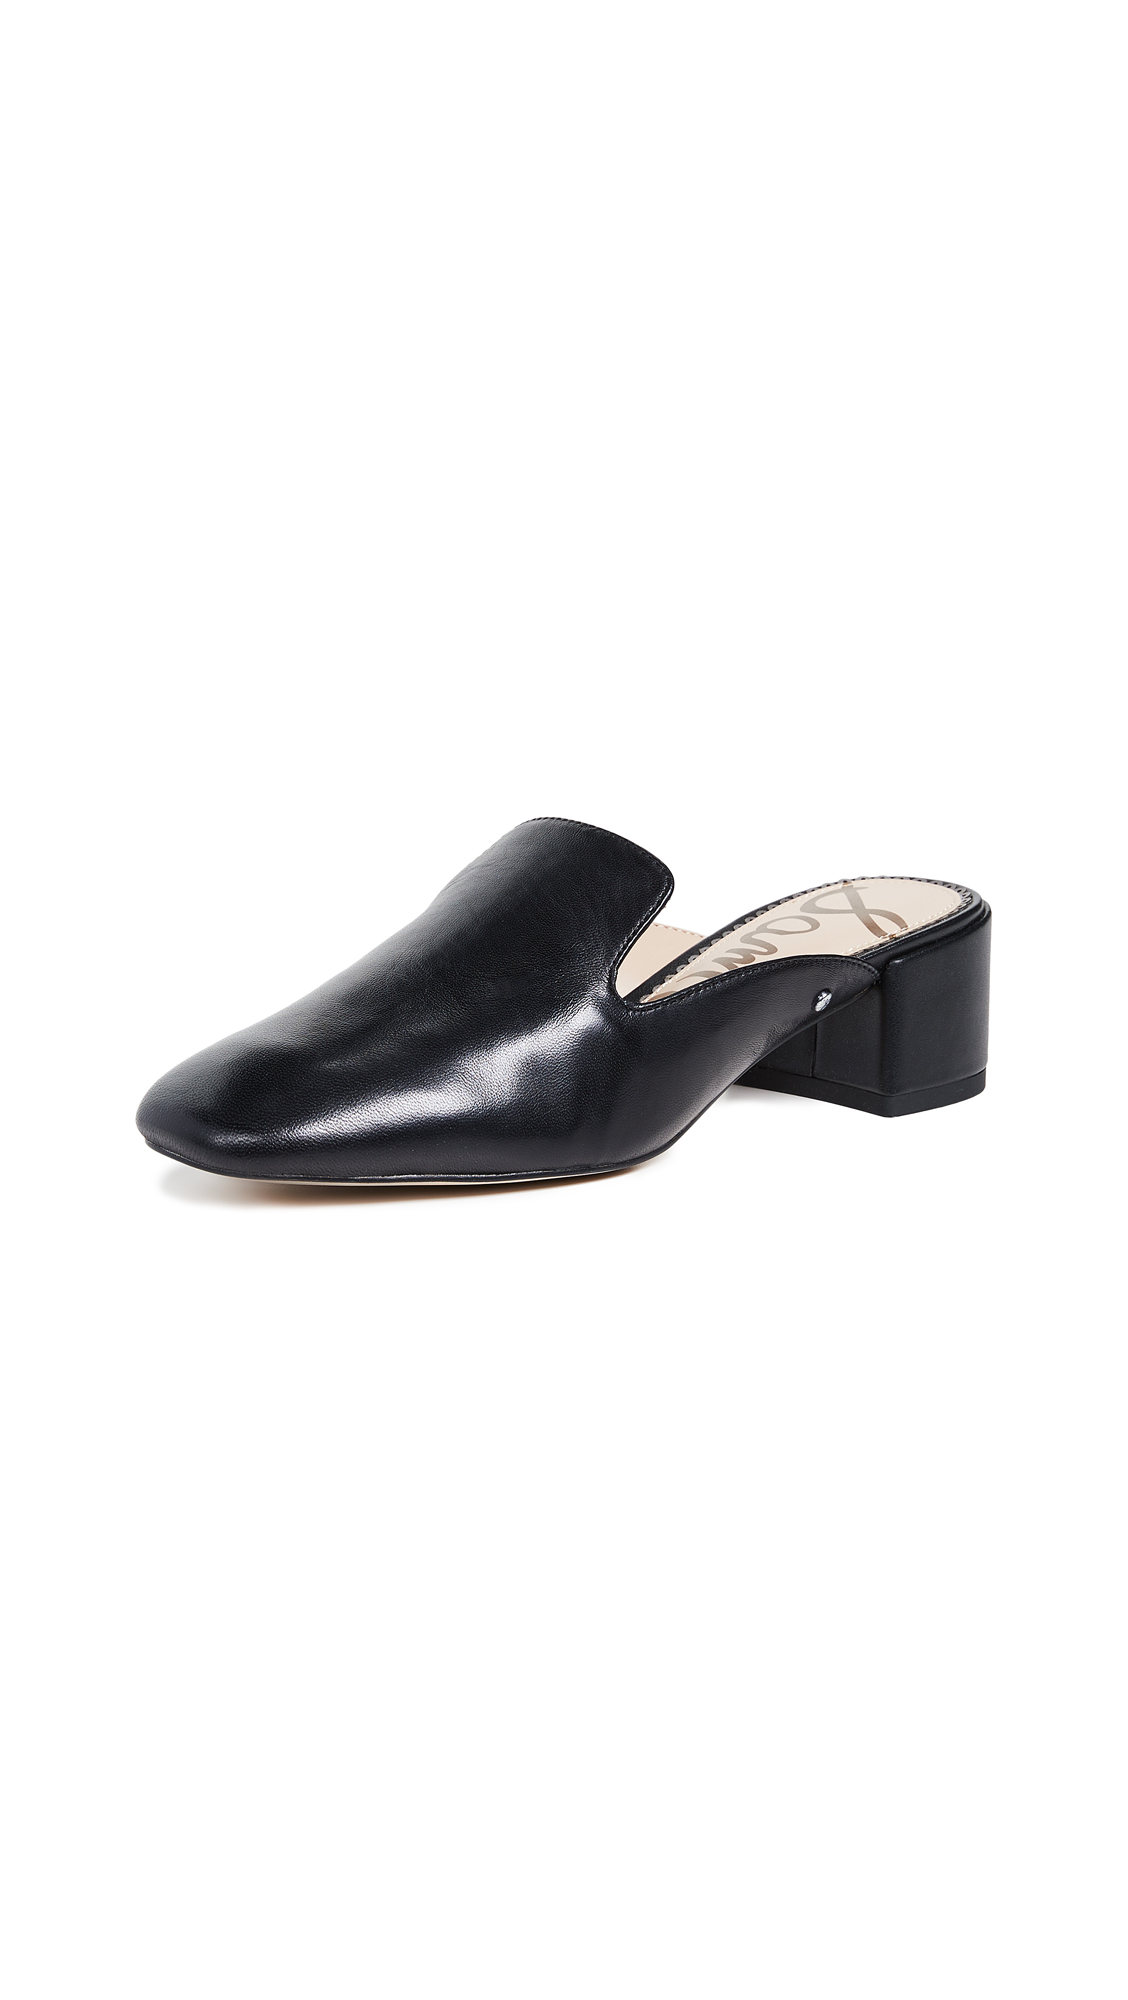 Sam Edelman Adair Mule Loafers - Black